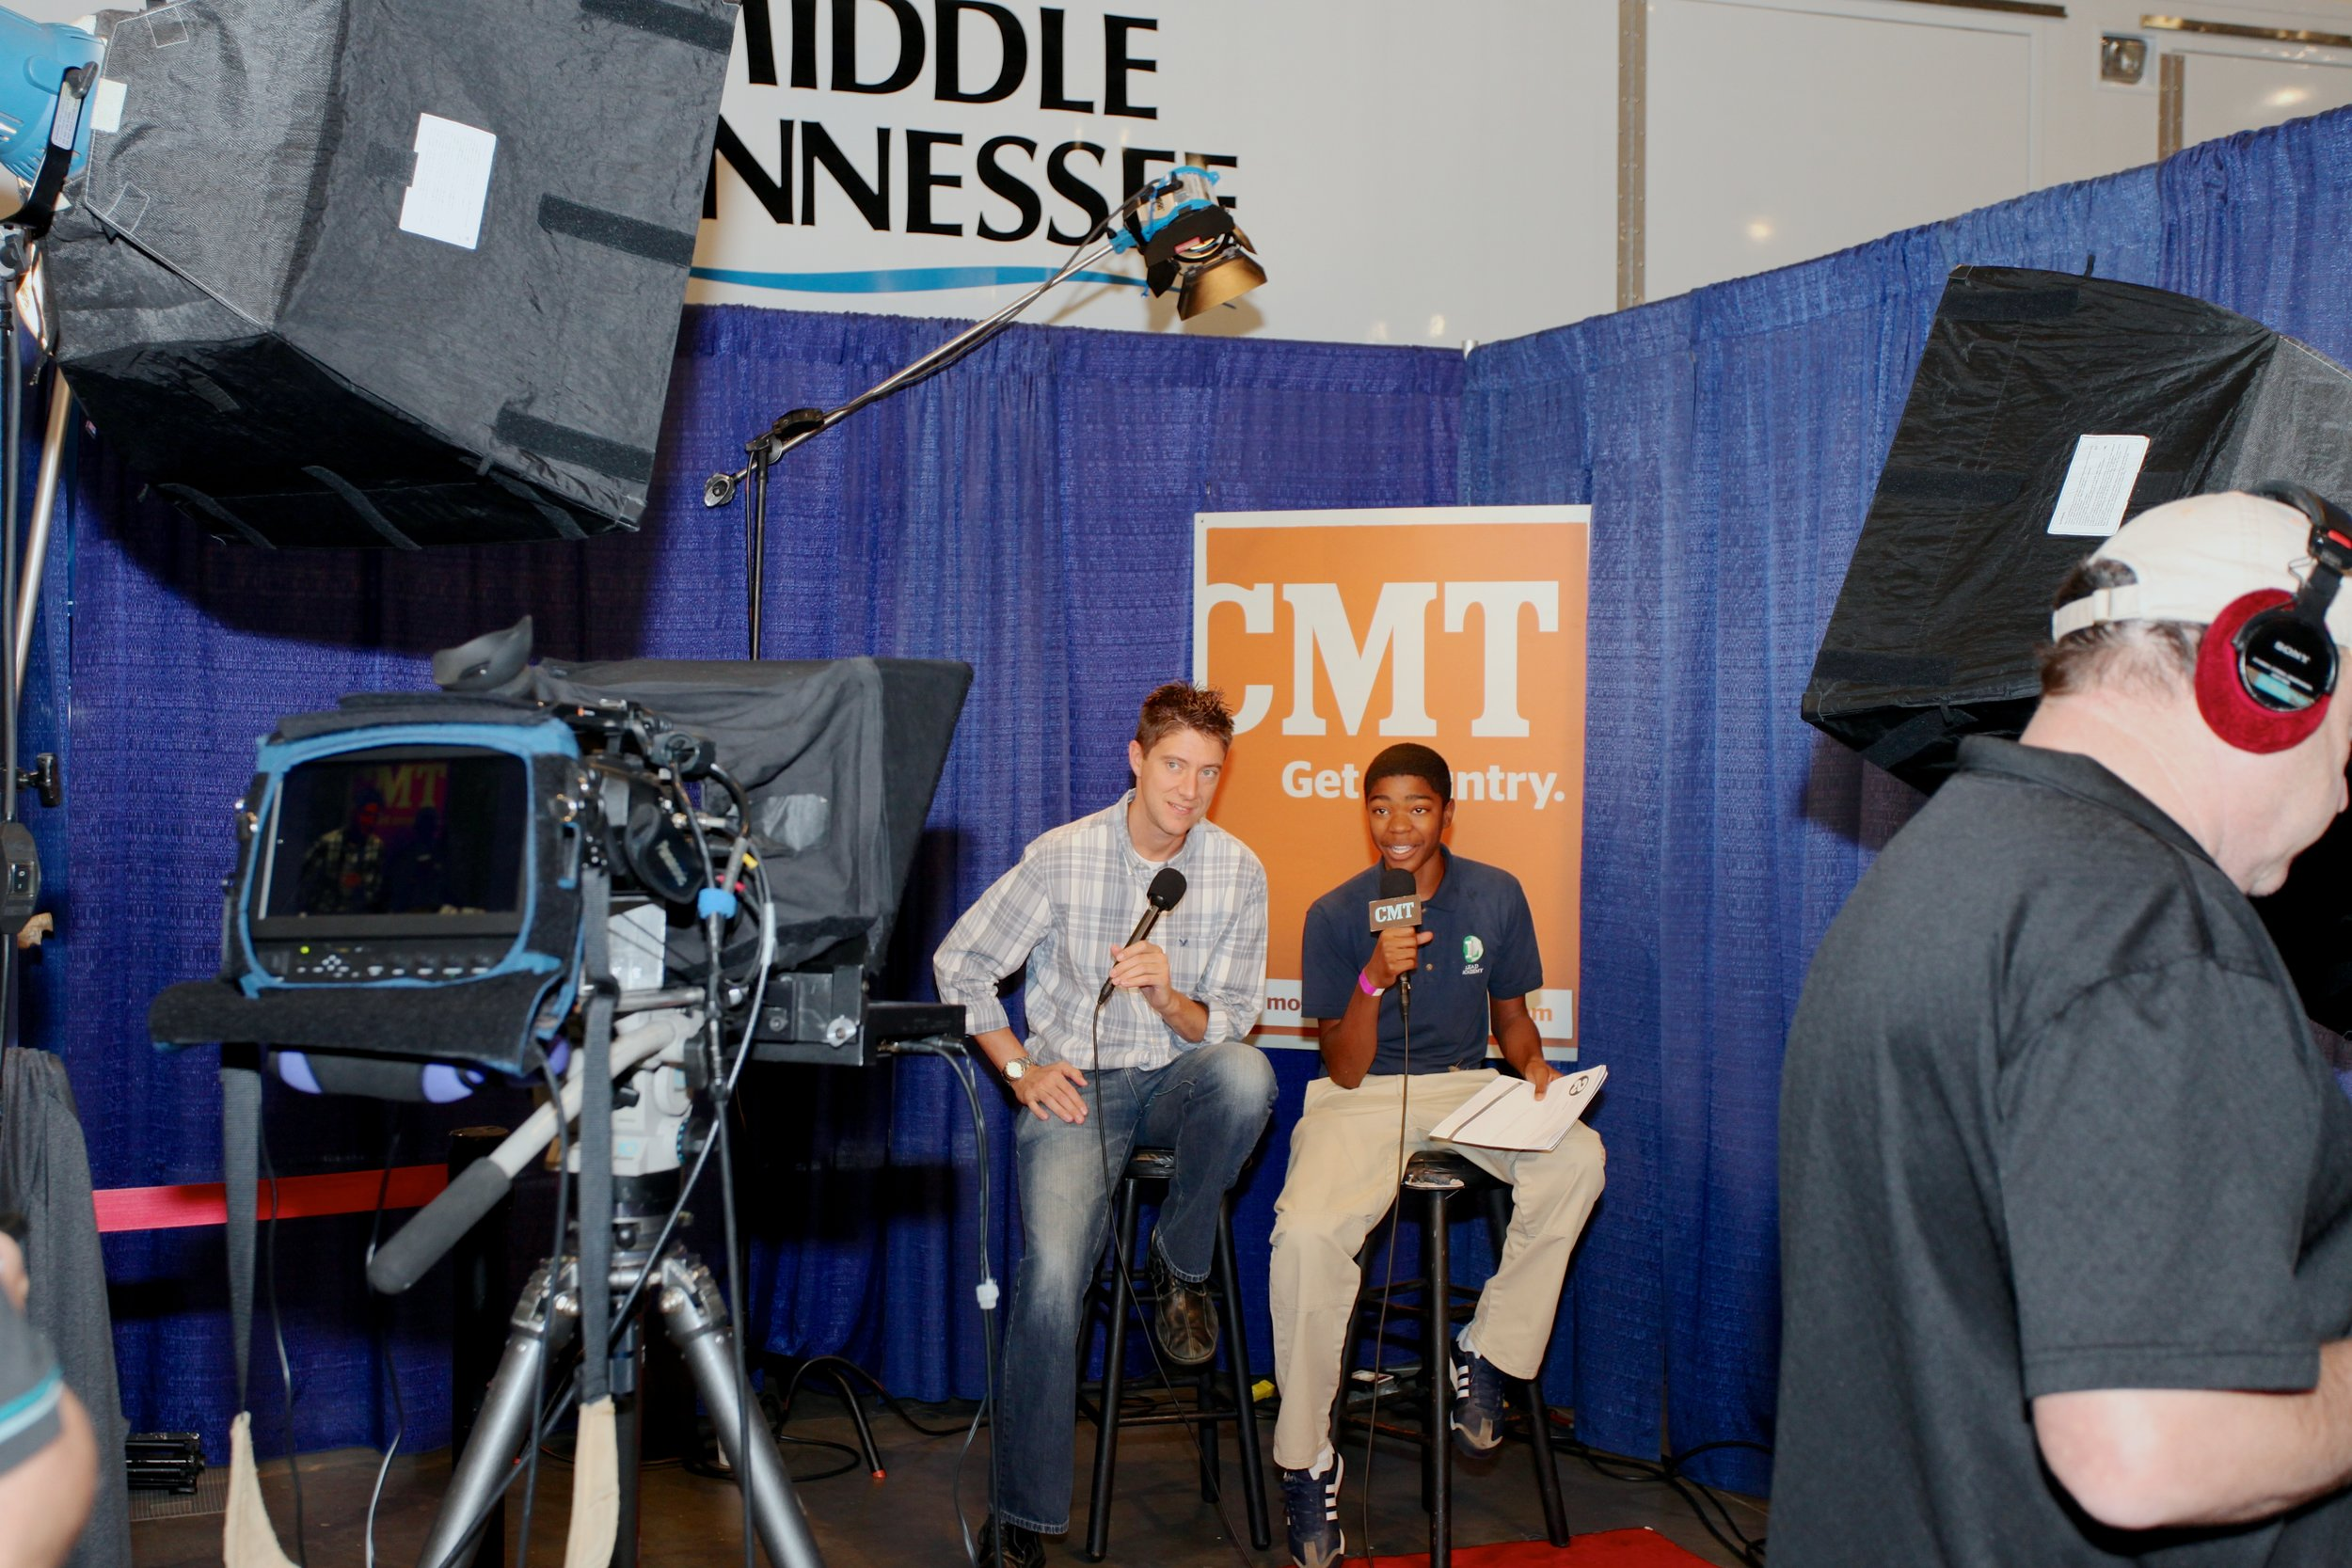 Many businesses allow students to experience the job by providing real world scenarios such as a live television interview while at the Career Exploration Fair.